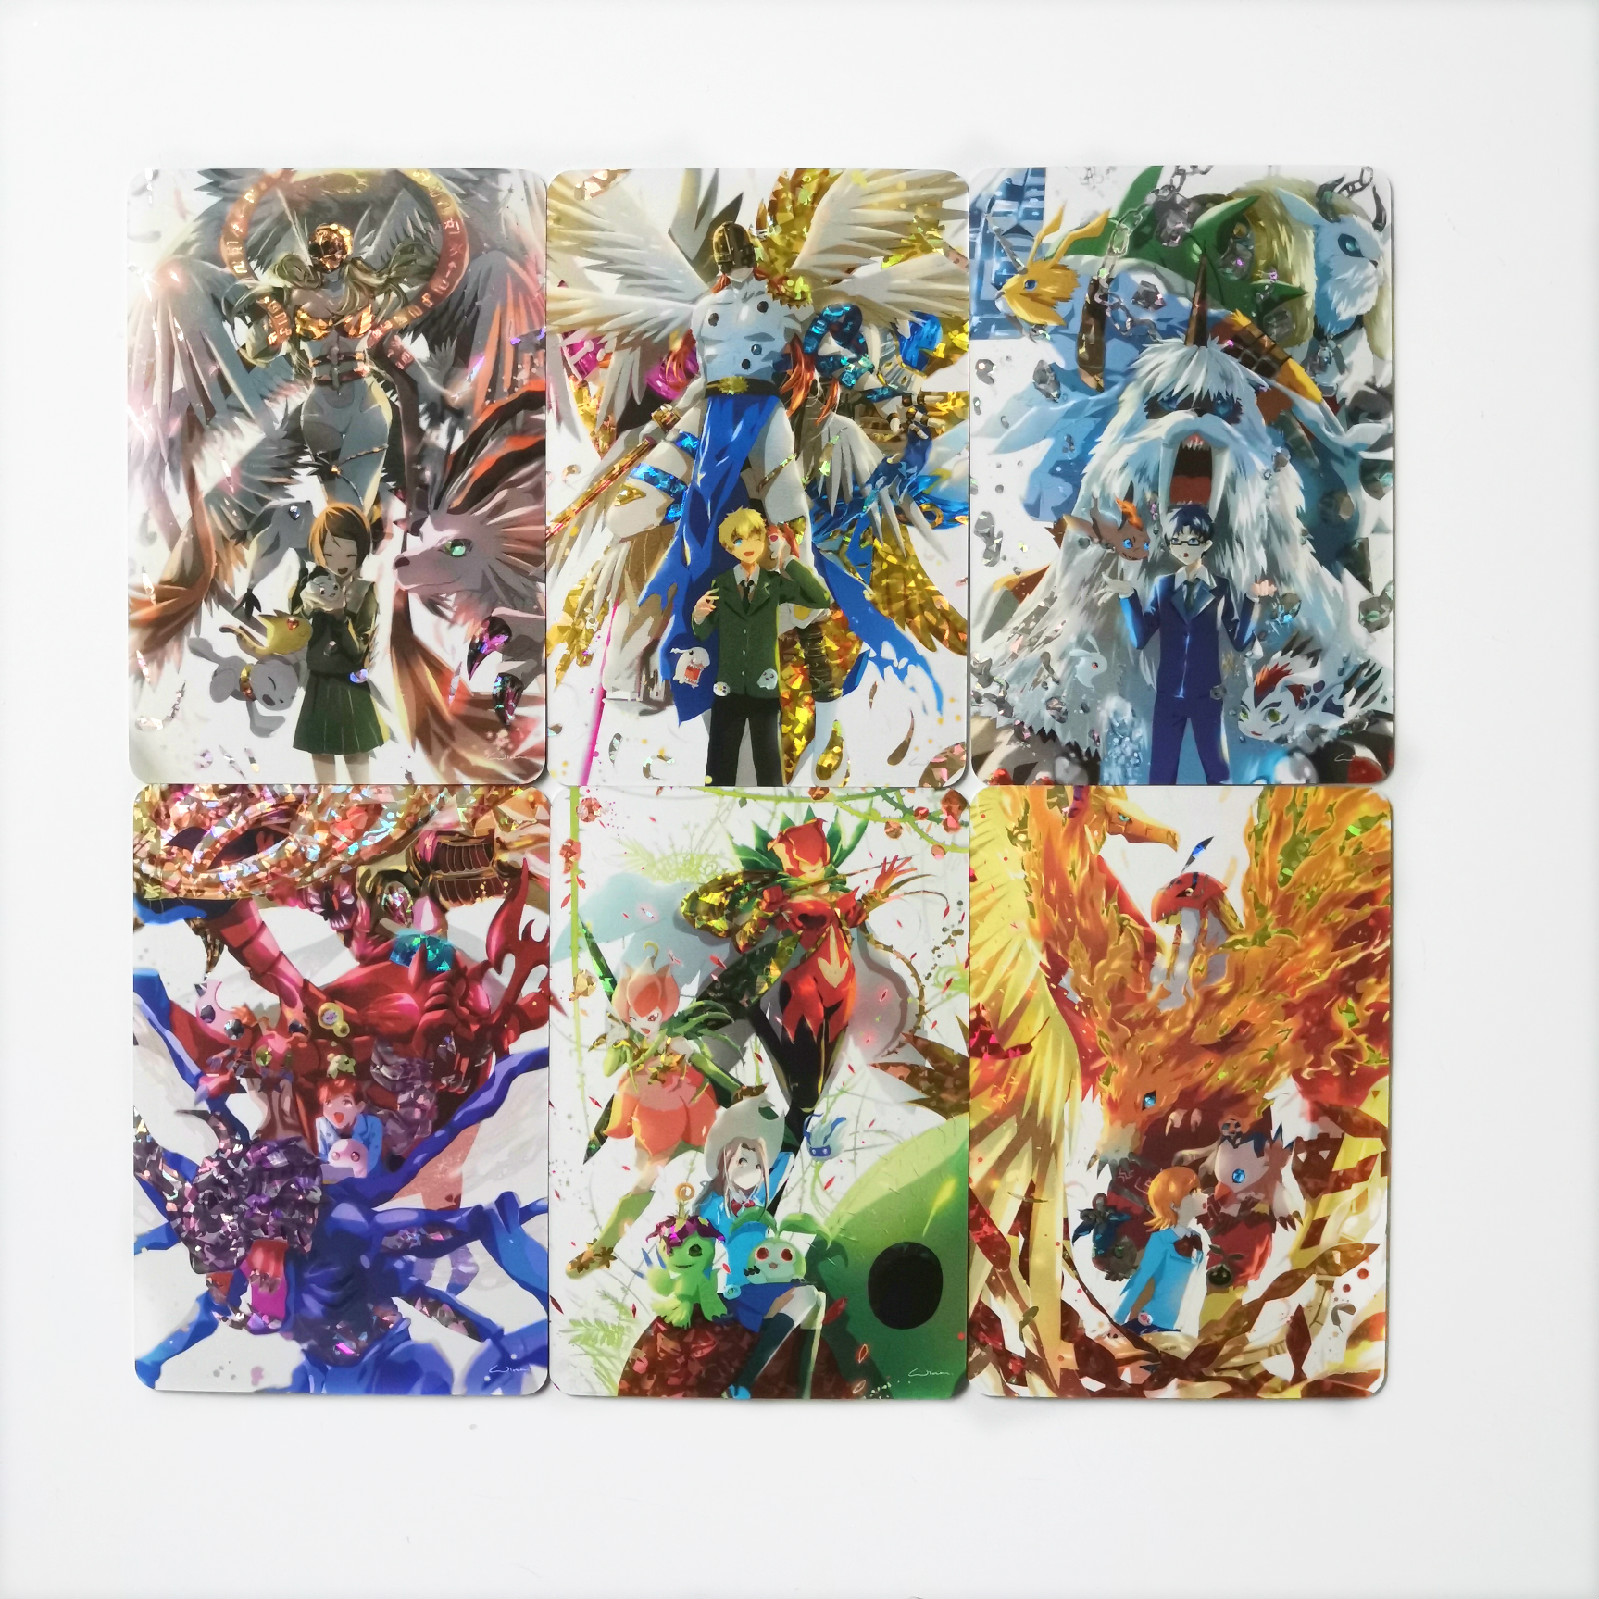 19pcs/set Digital Monster Toys Hobbies Hobby Collectibles Game Collection Anime Cards